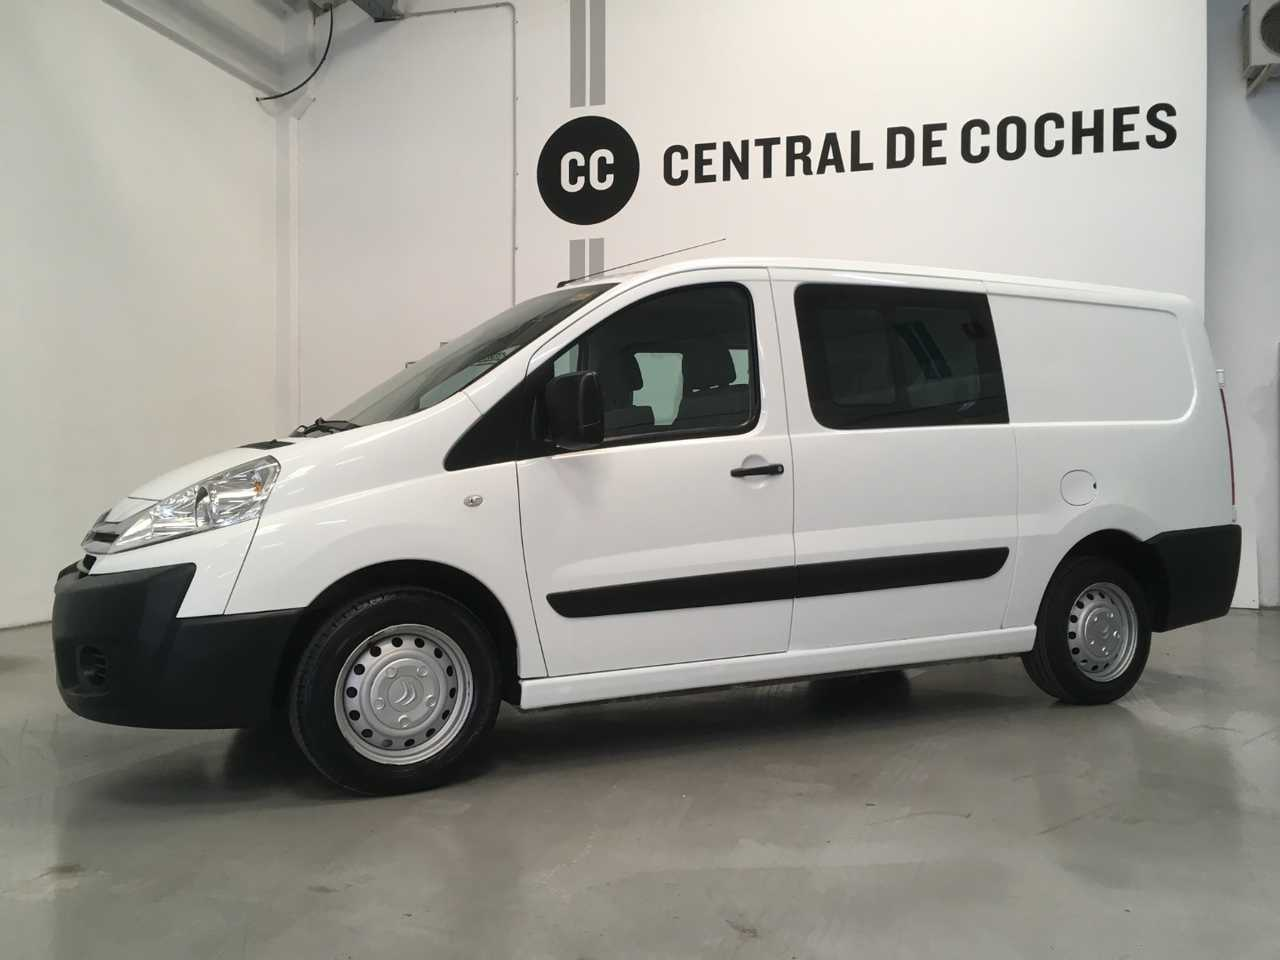 Citroën Jumpy 2.0 HDI 125cv L2 Mixto 5 Plazas / Rampa /Bola /Cruise /Bluetooth   - Foto 1